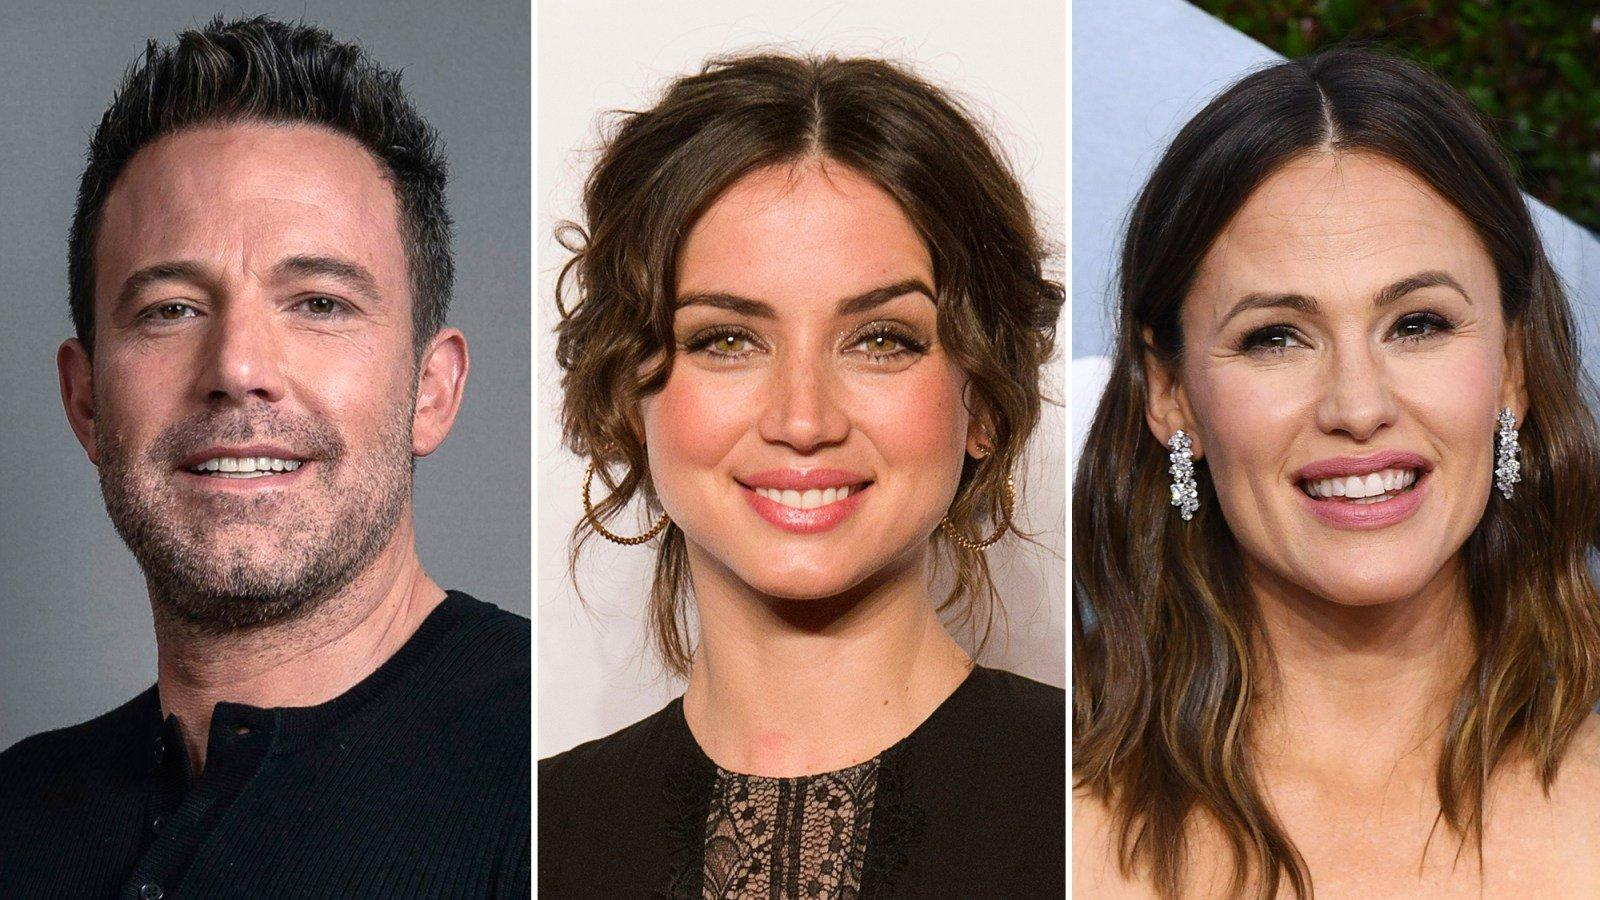 Is Jennifer Garner Hurt That Ben Affleck Has Moved On With Ana De Armas?